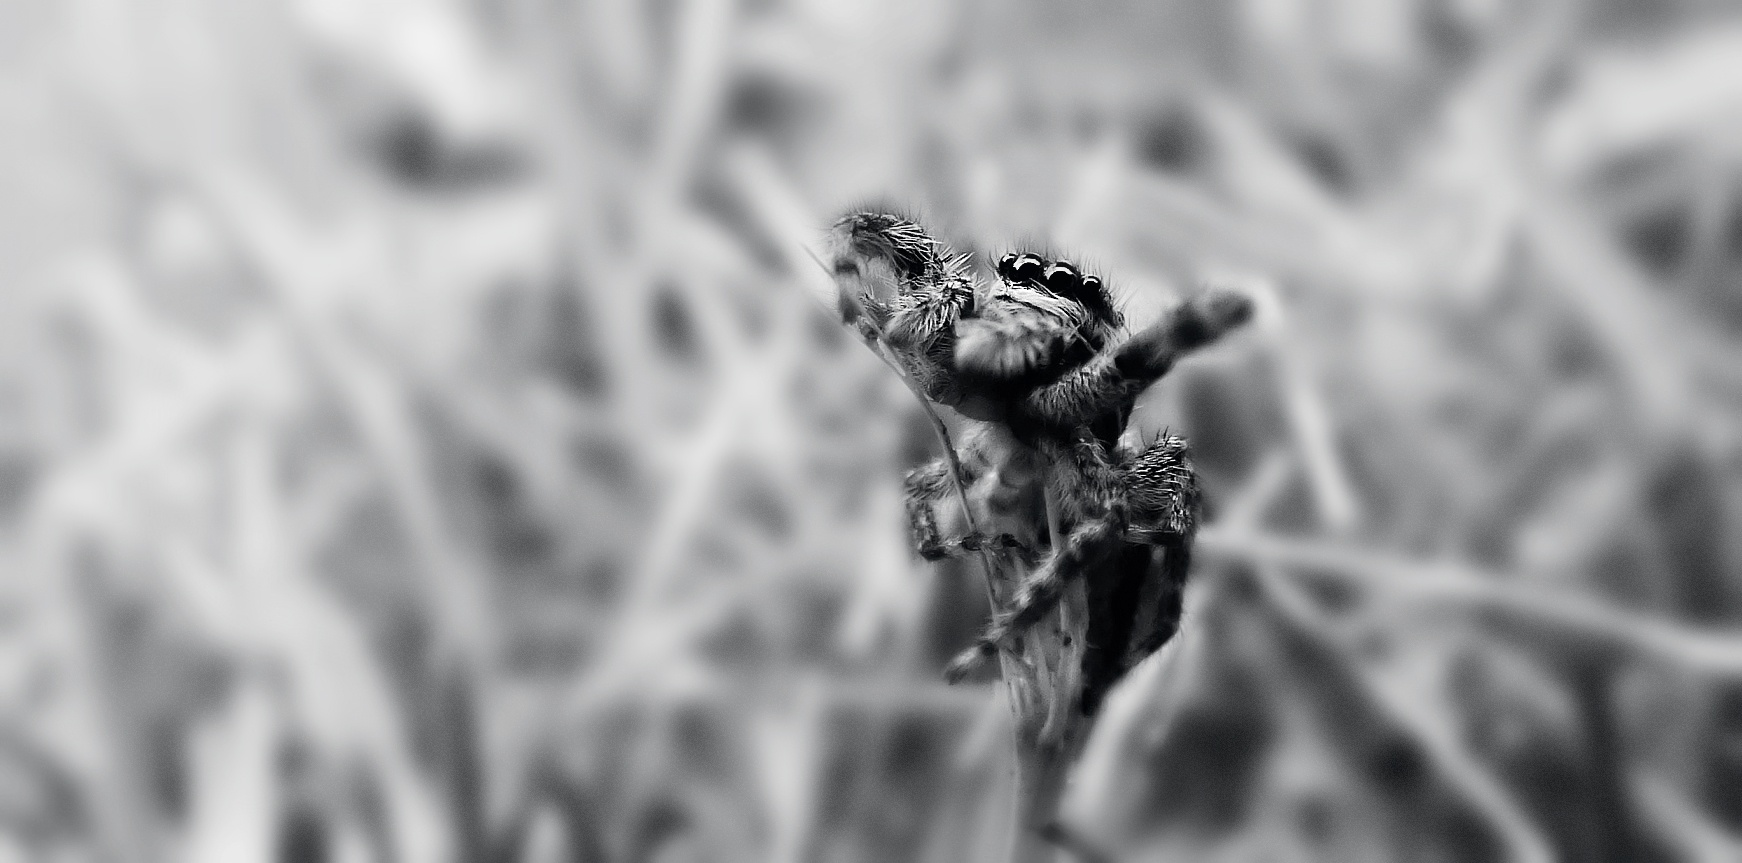 Spider BW by LioNita Photography